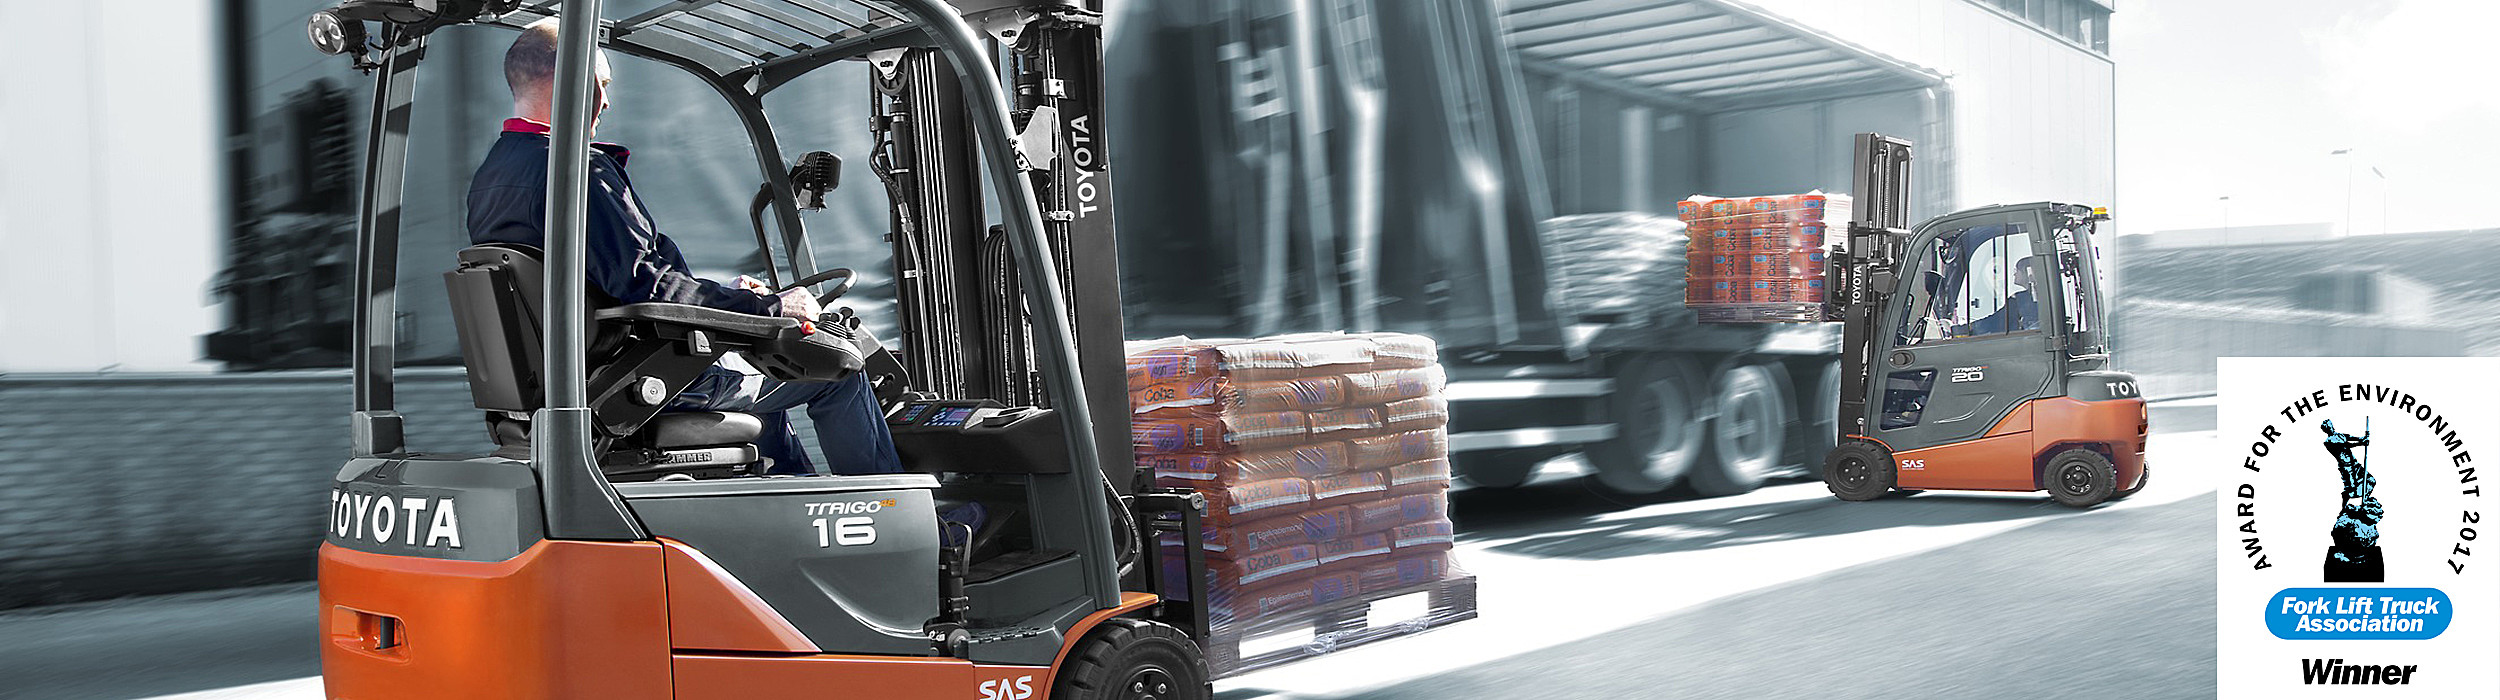 Toyota Traigo electric counterbalance forklifts used in transport